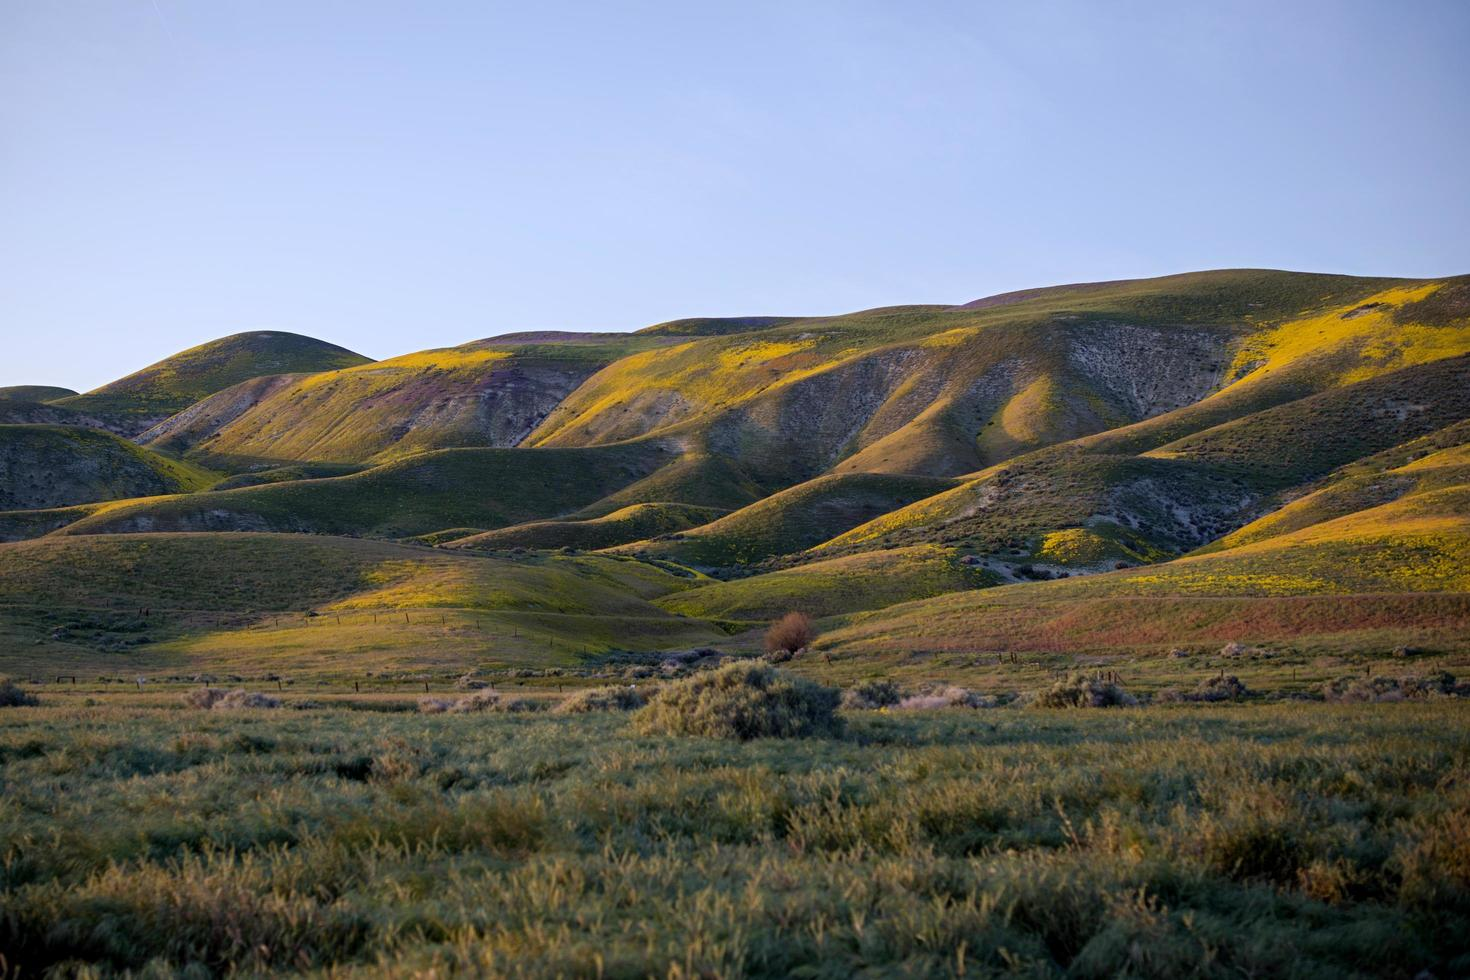 landscape photography of green mountain photo